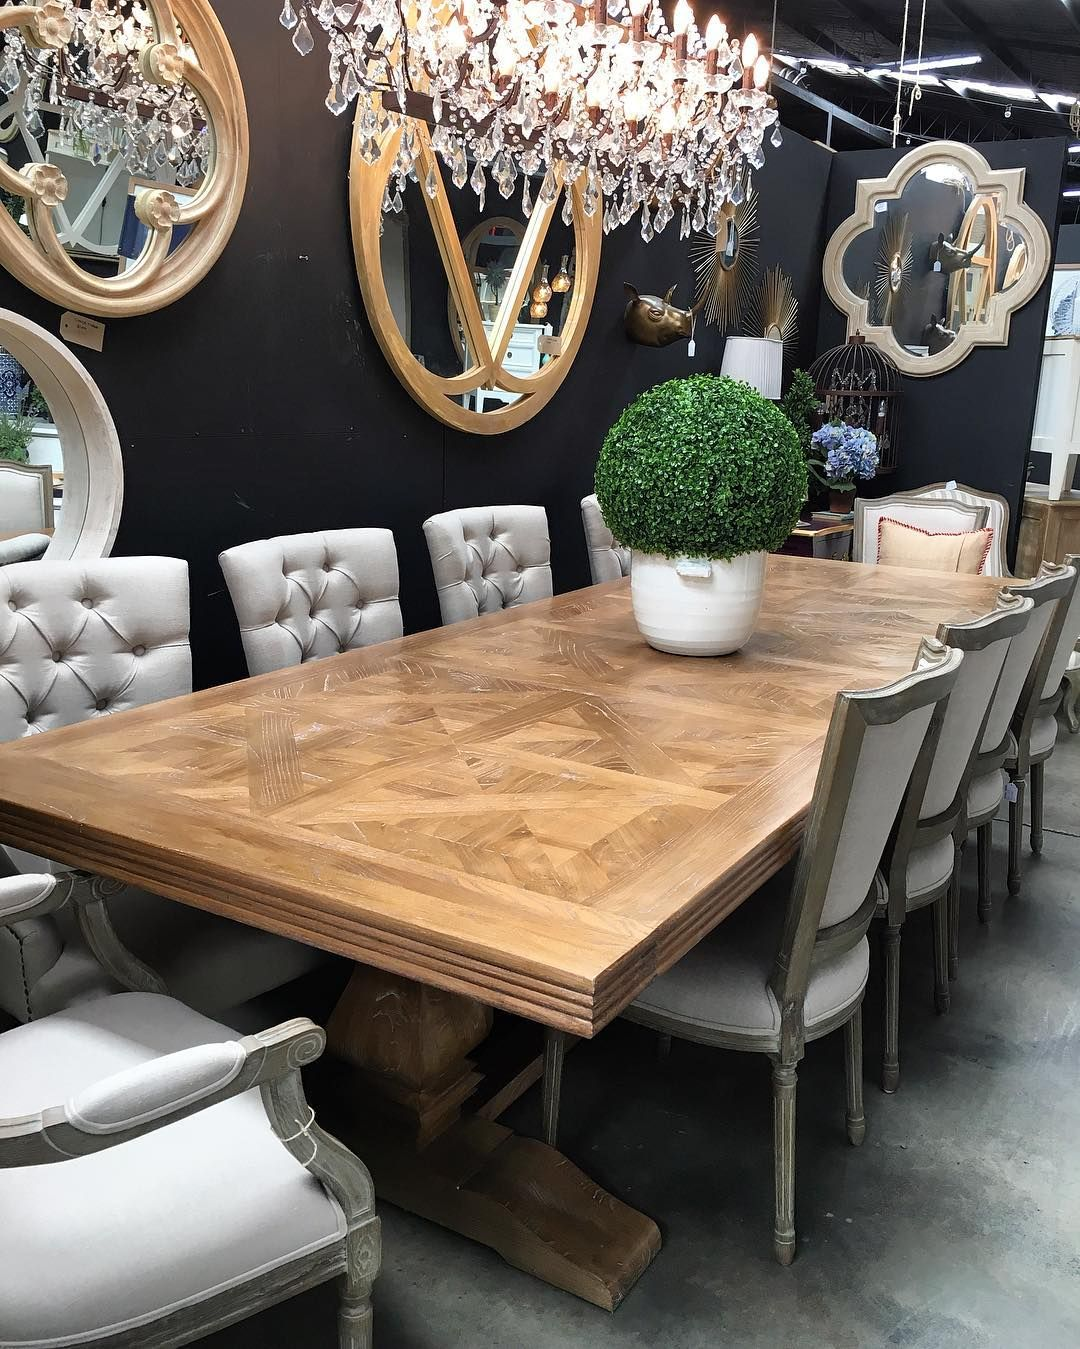 Dining Table For 10 12 Now This Is A Table Canalside Interiors 3 2m Banquet Dining